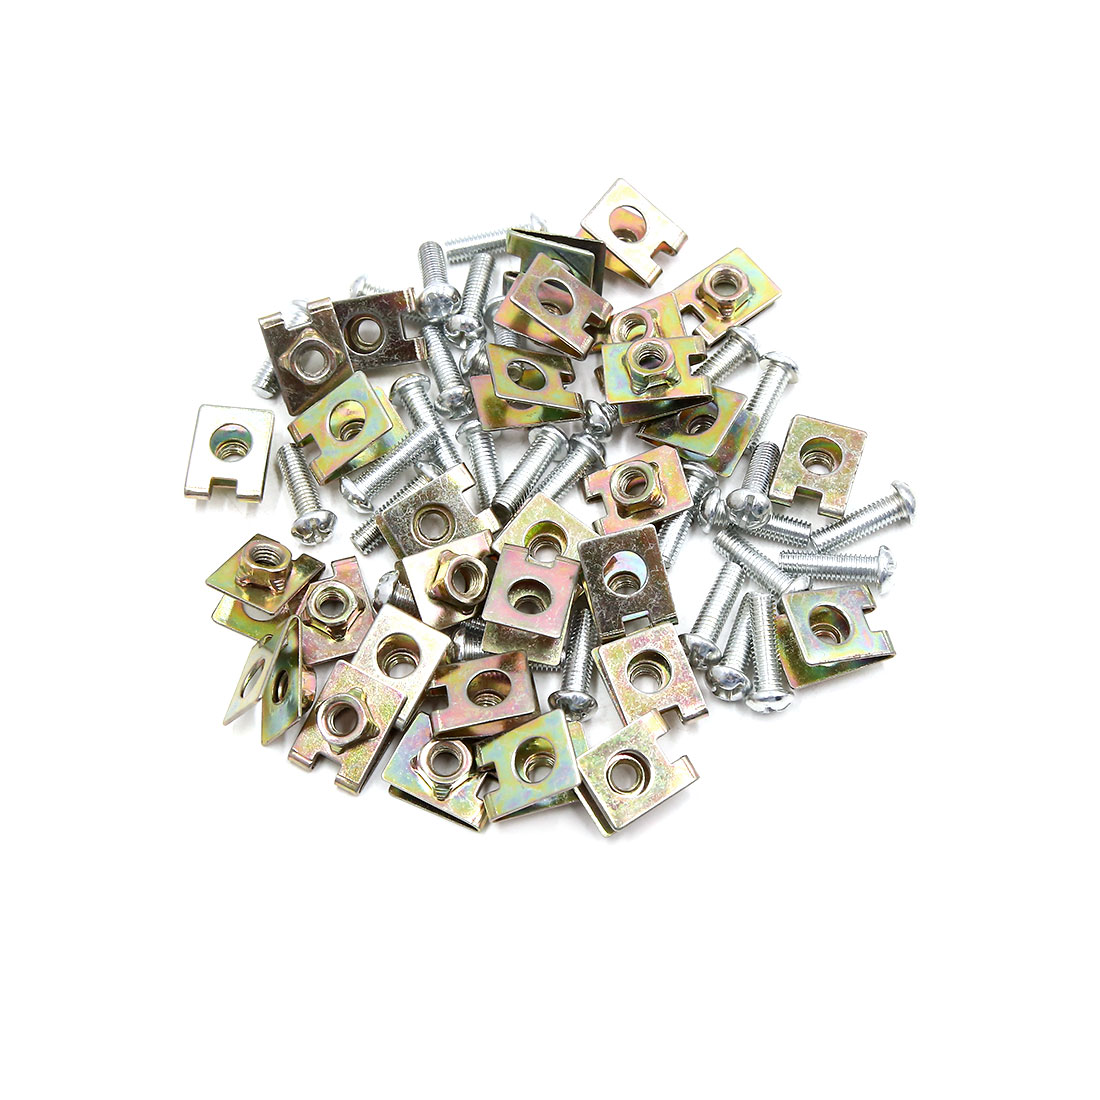 30PCS 6mm Thread Dia Universal License Plate Fixing Clips Kit for Car w Screws